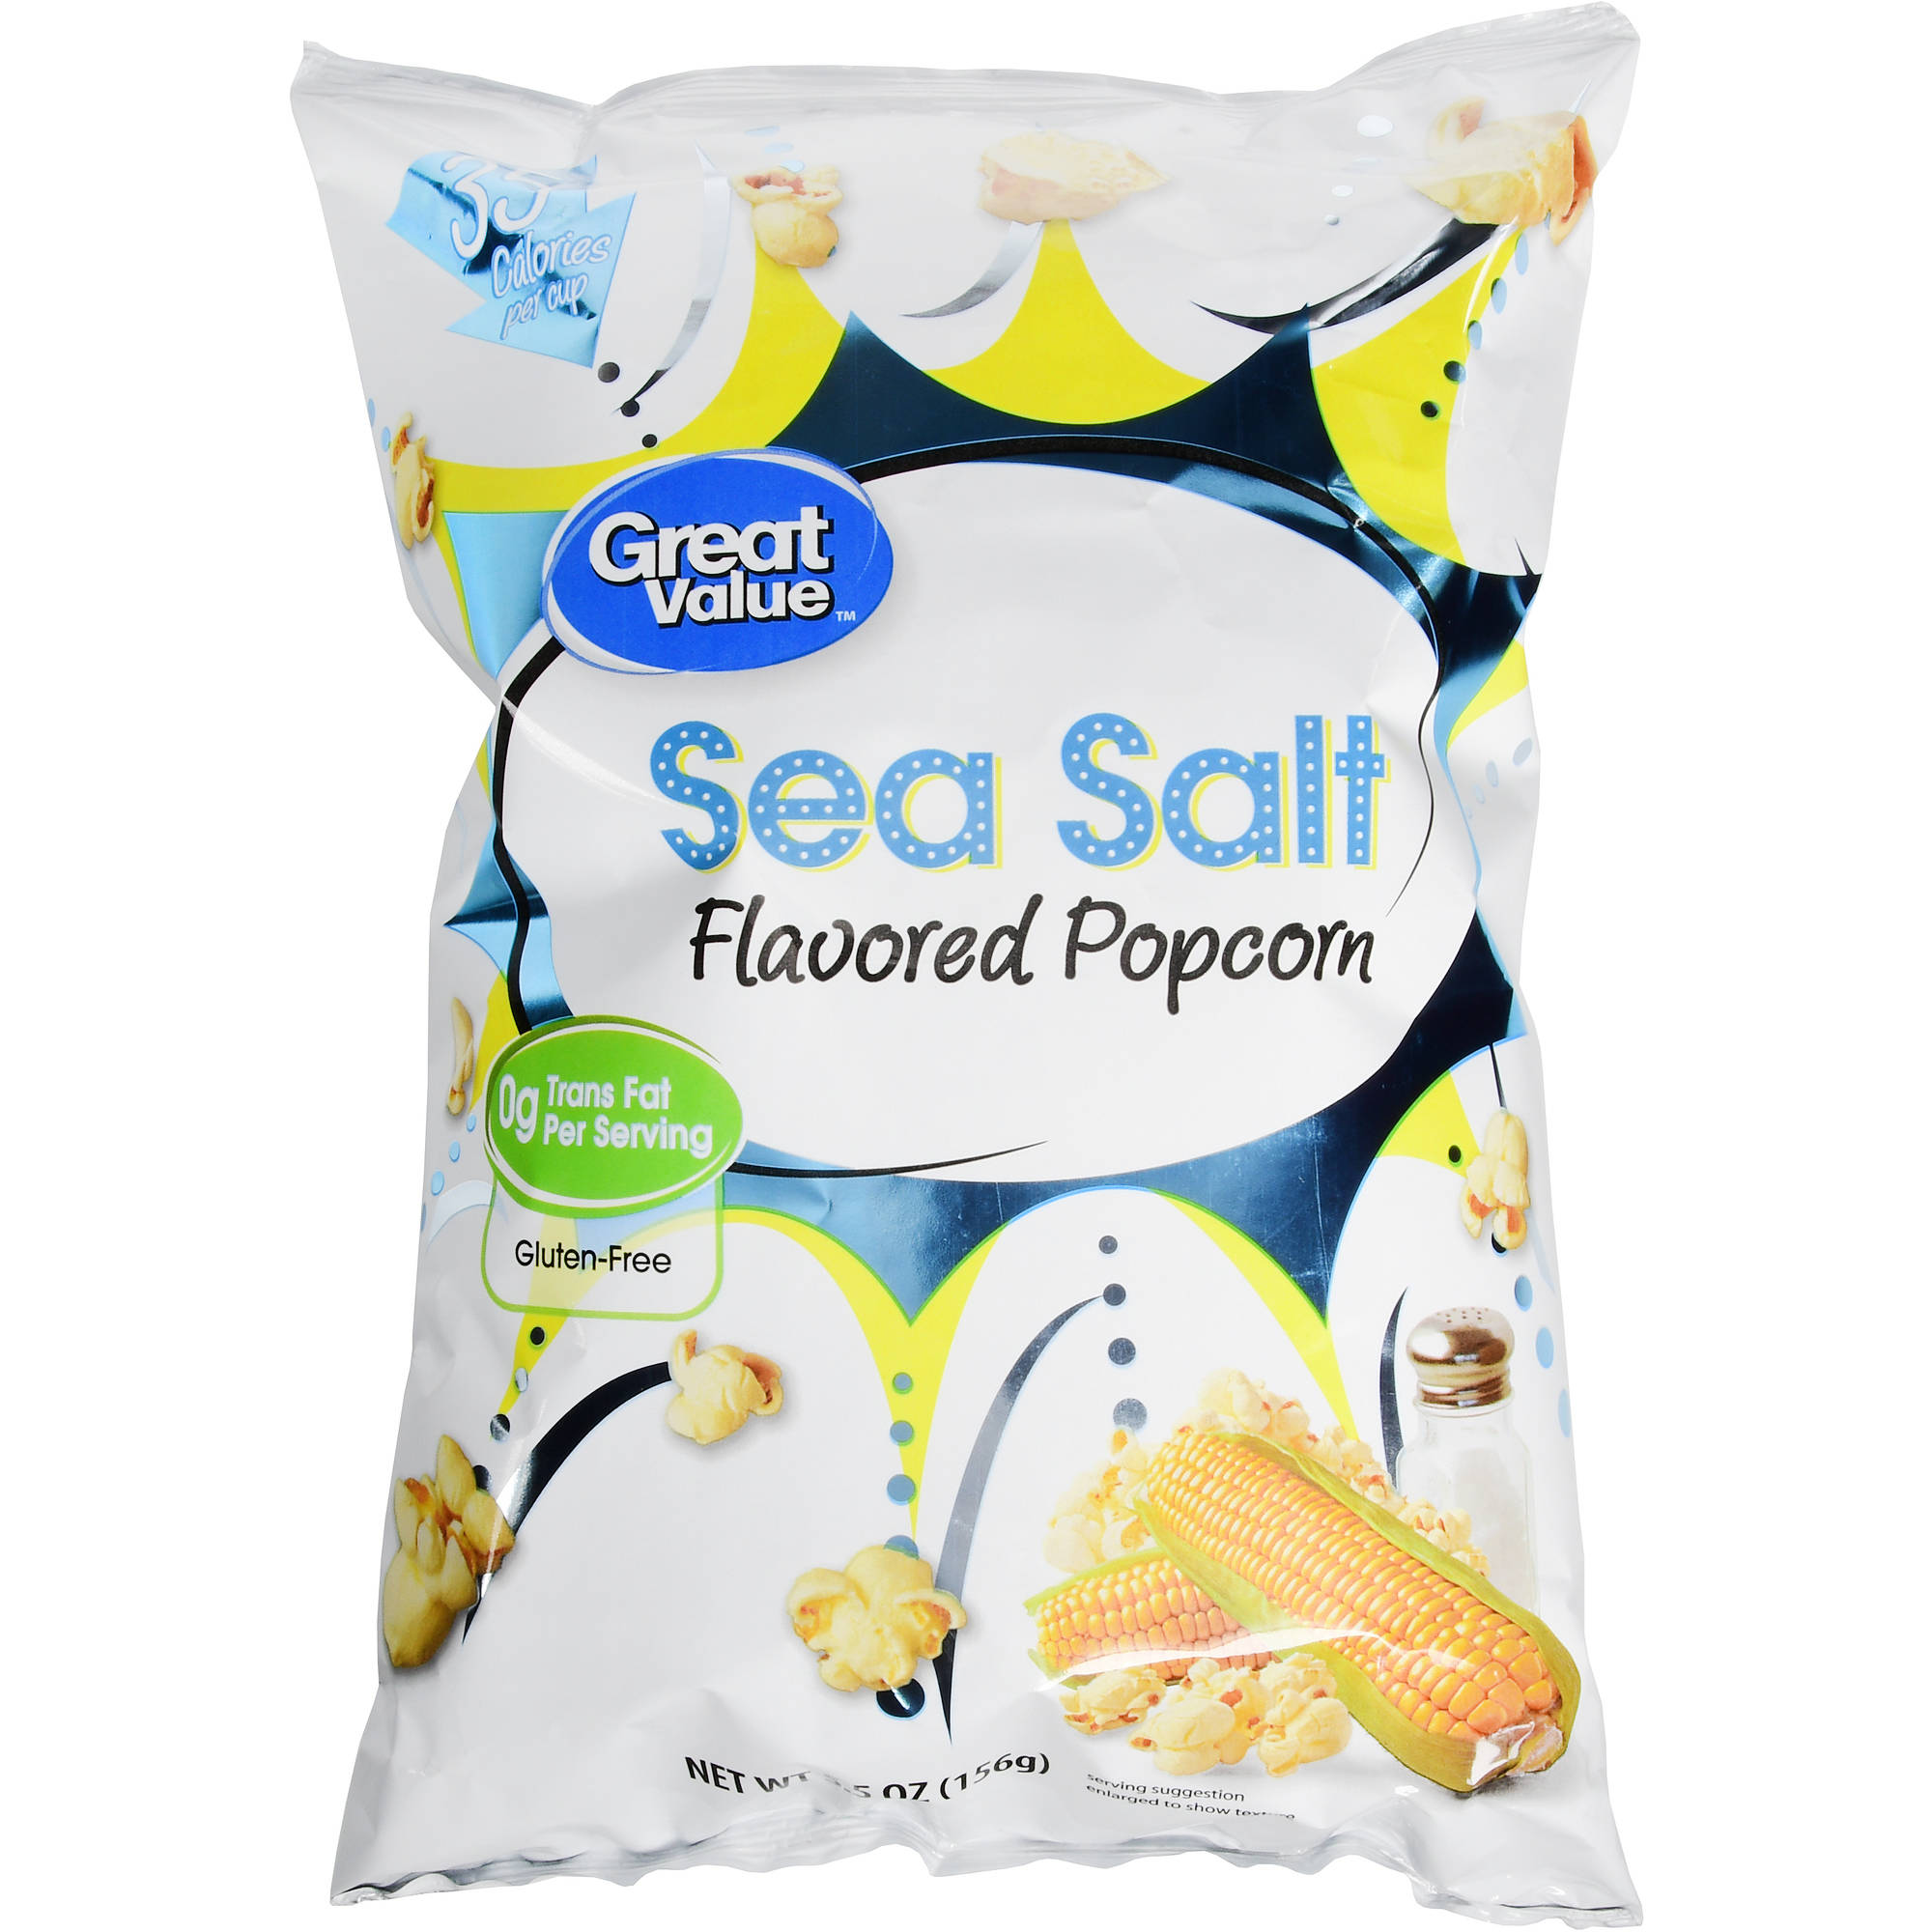 Great Value Sea Salt Flavored Popcorn, 5.5 oz by WAL-MART STORES INC